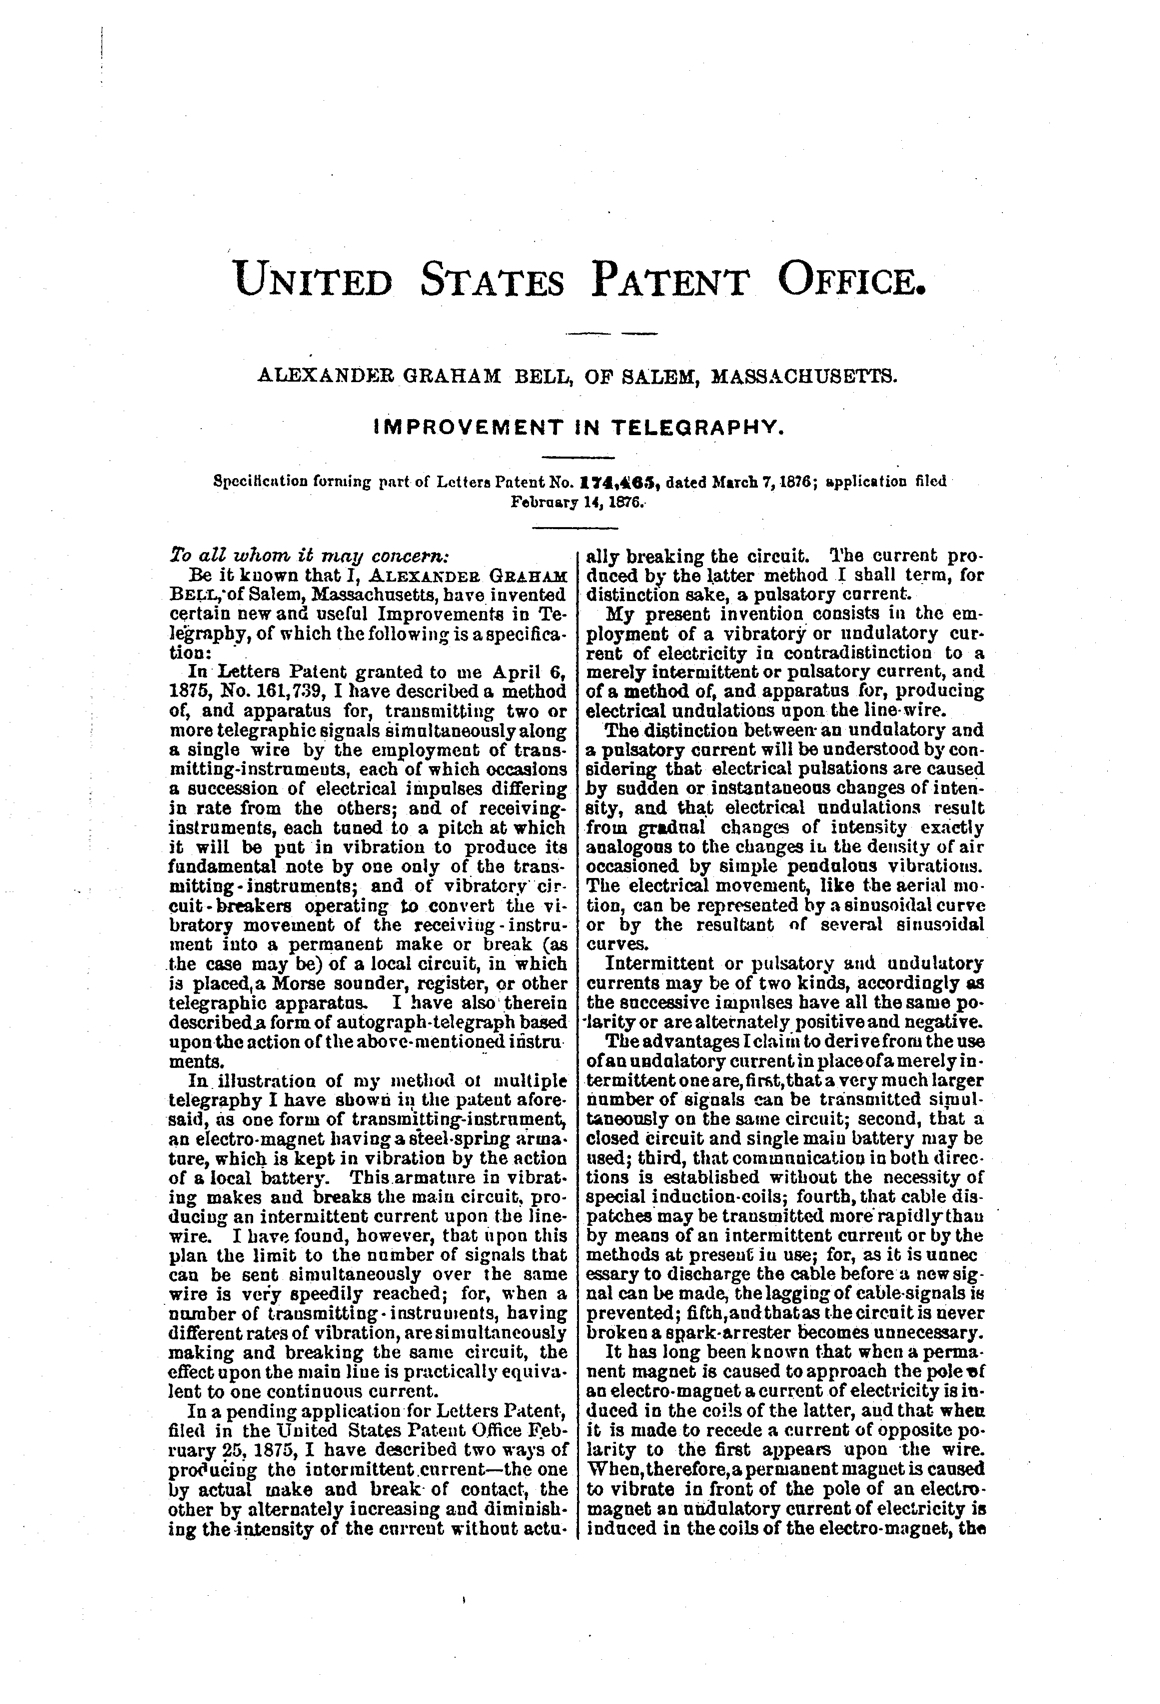 US174465 (page1)